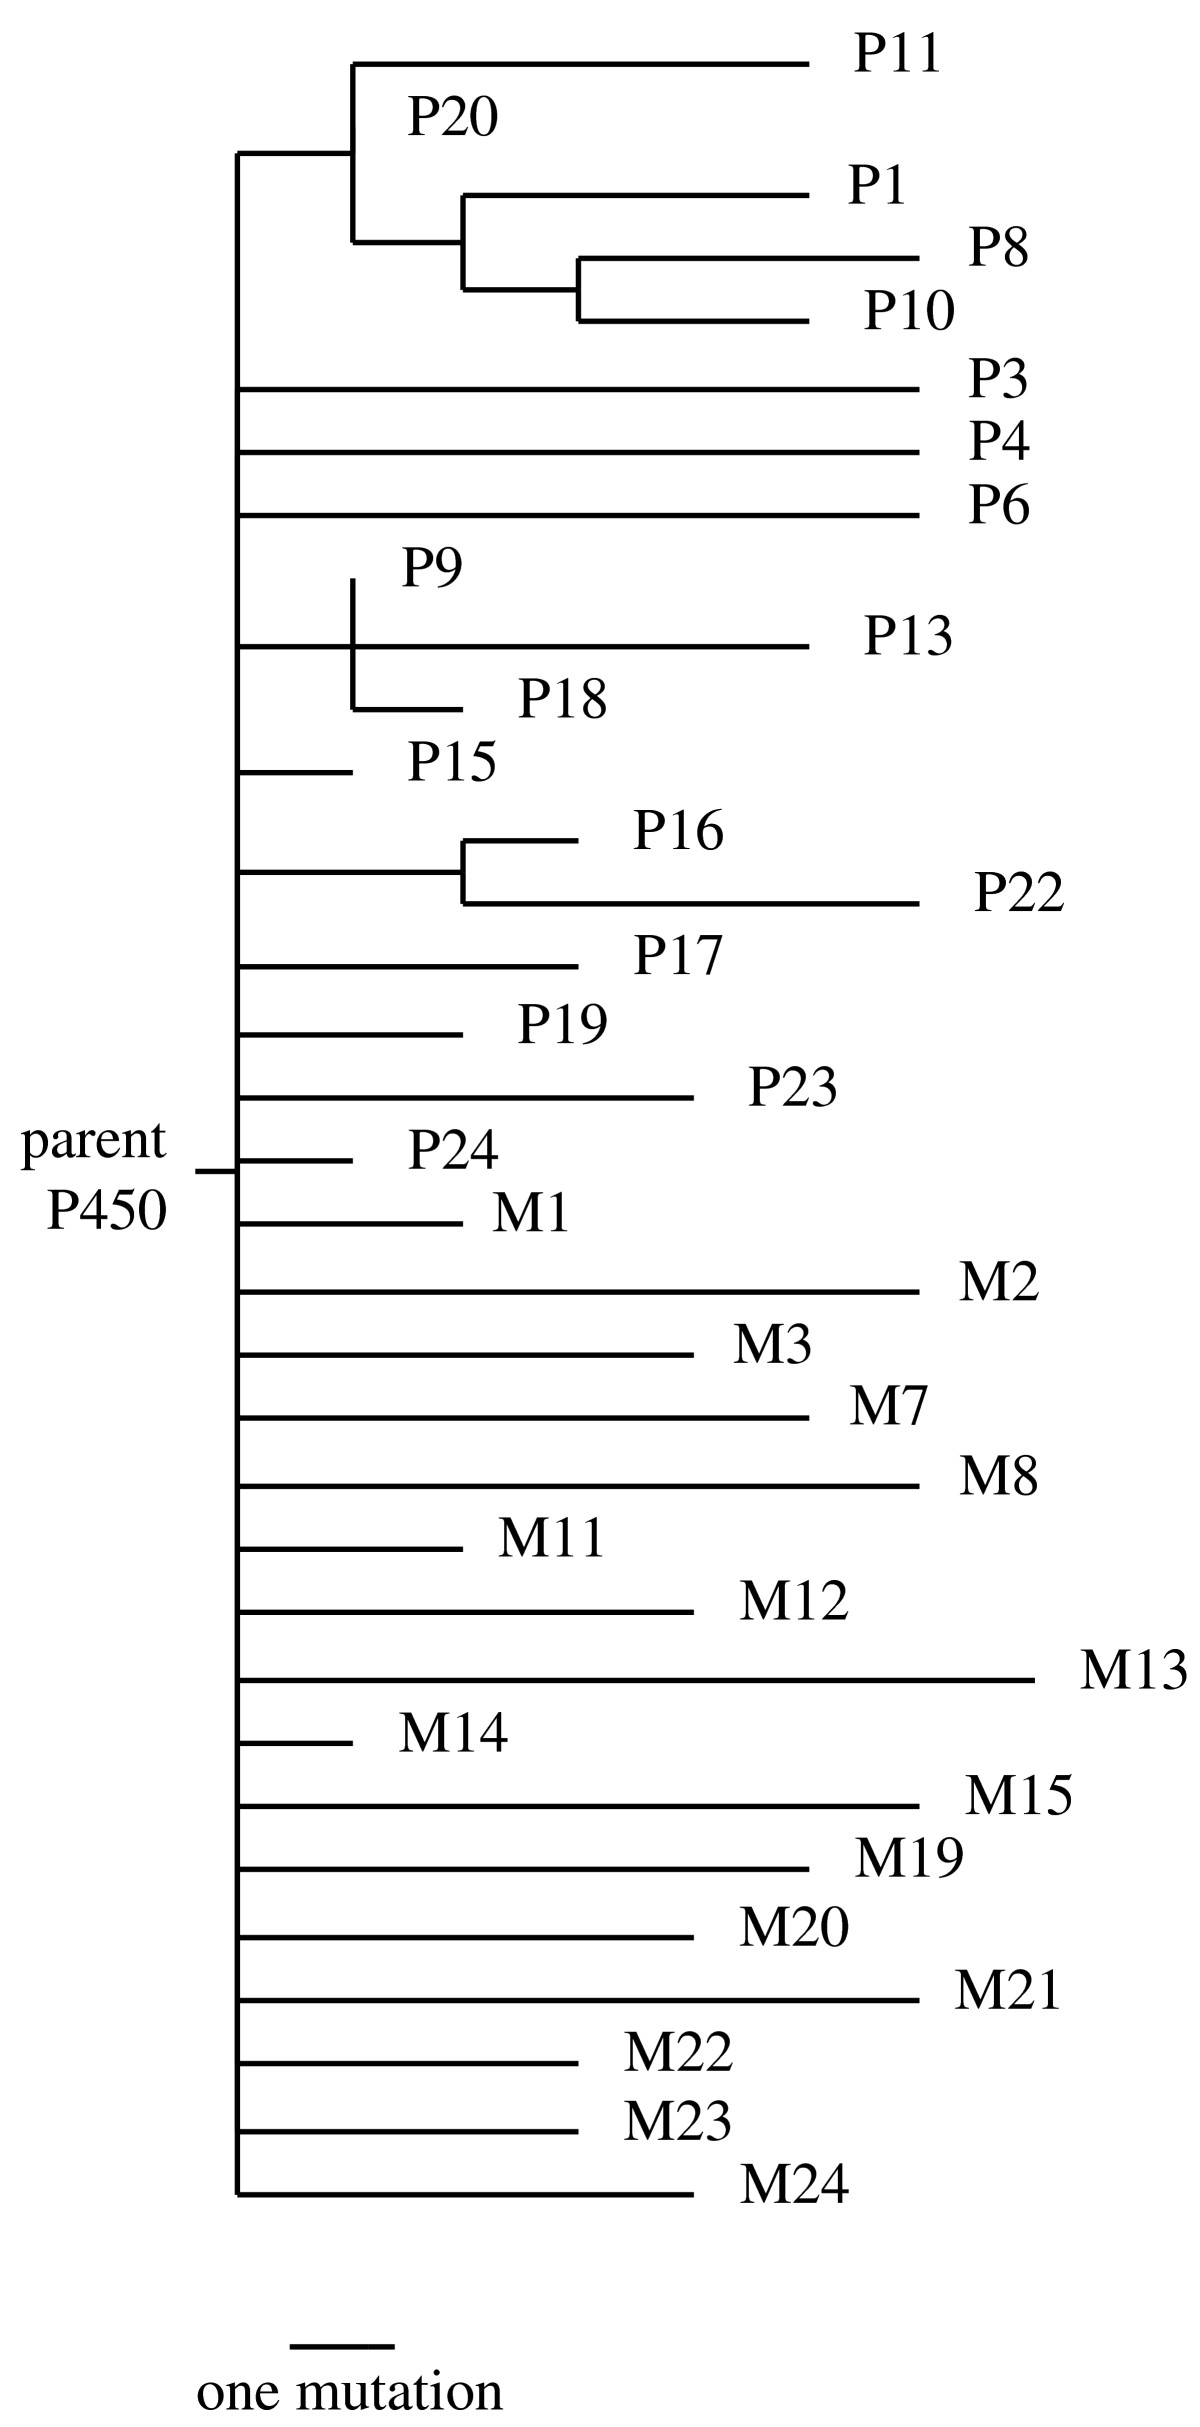 http://static-content.springer.com/image/art%3A10.1186%2F1745-6150-2-17/MediaObjects/13062_2007_Article_56_Fig1_HTML.jpg